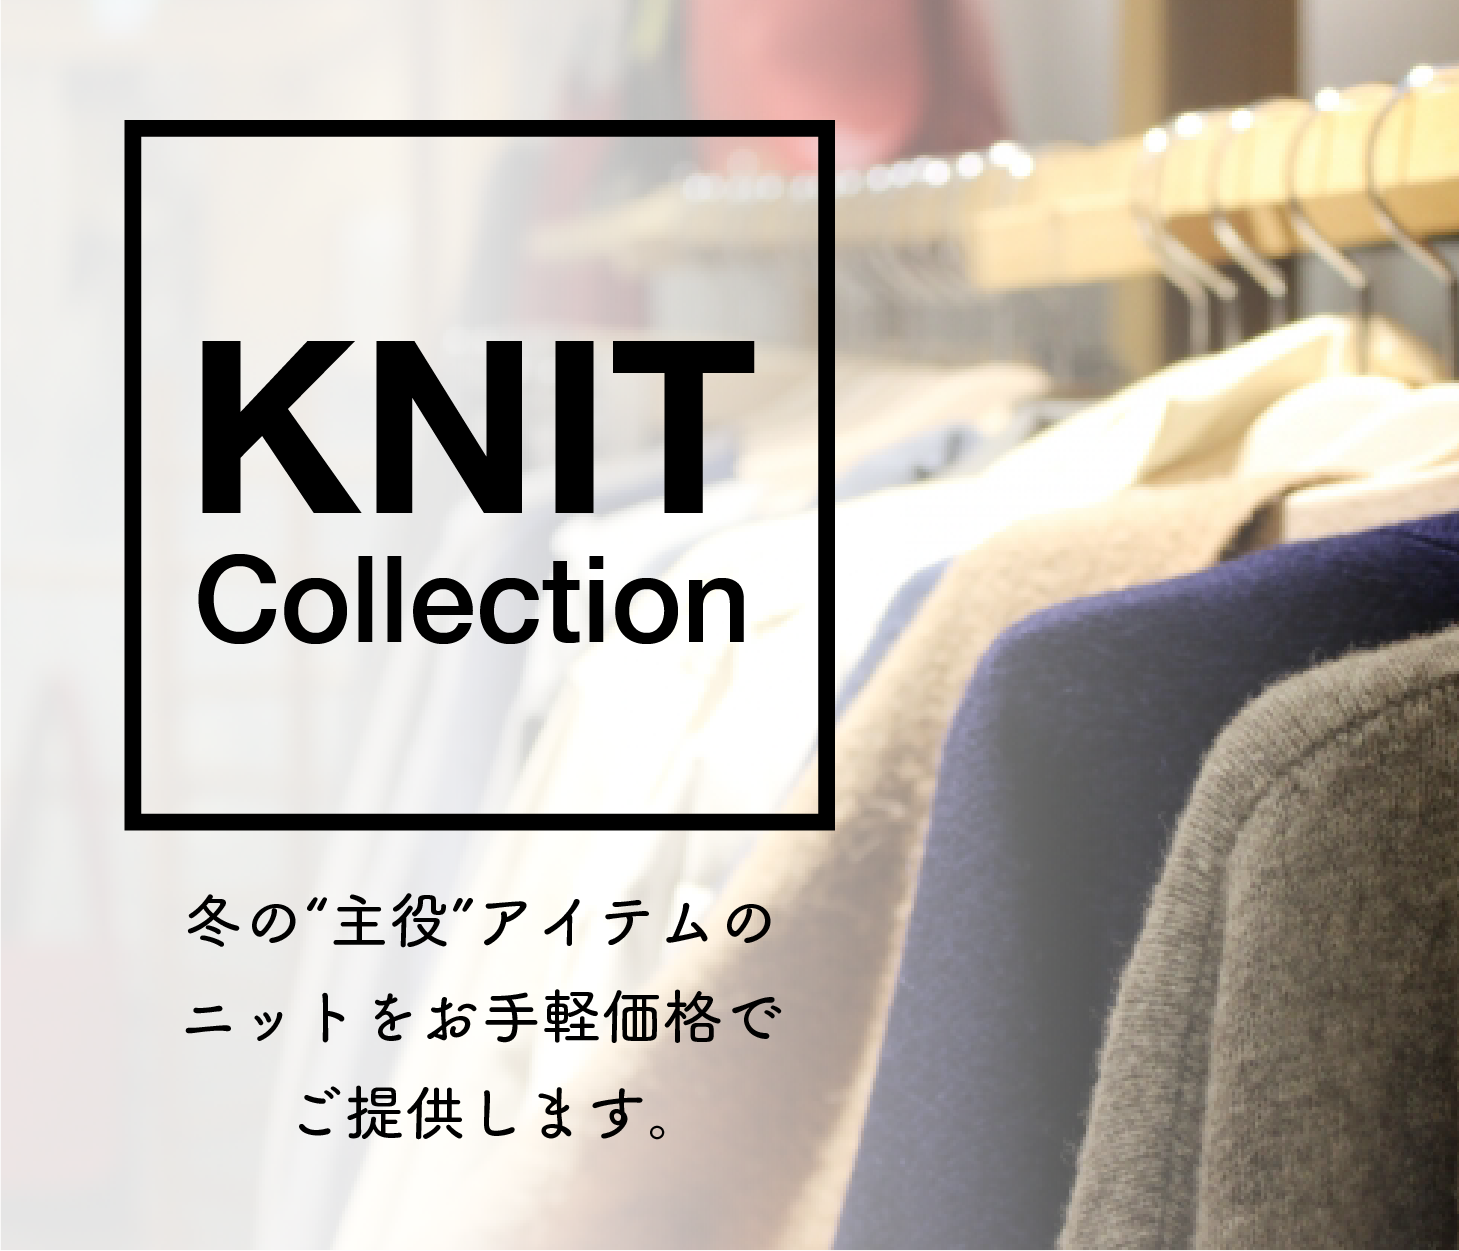 KNIT Collection バナー